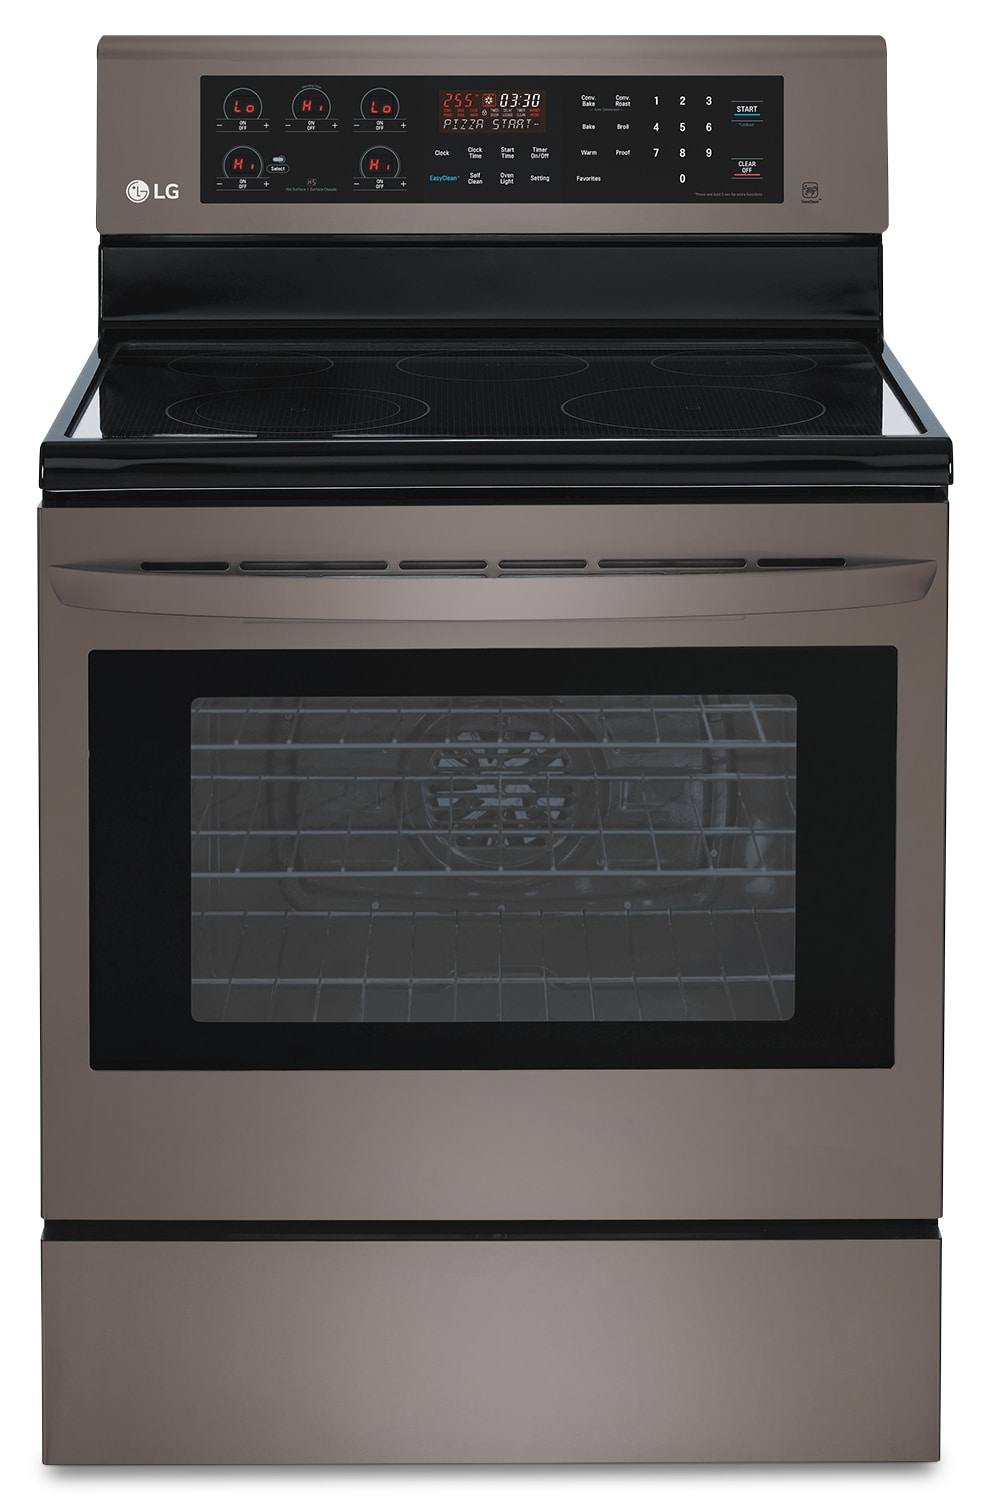 LG Black Stainless Steel Electric Convection Range (6.3 Cu. Ft.) - LRE6383BD